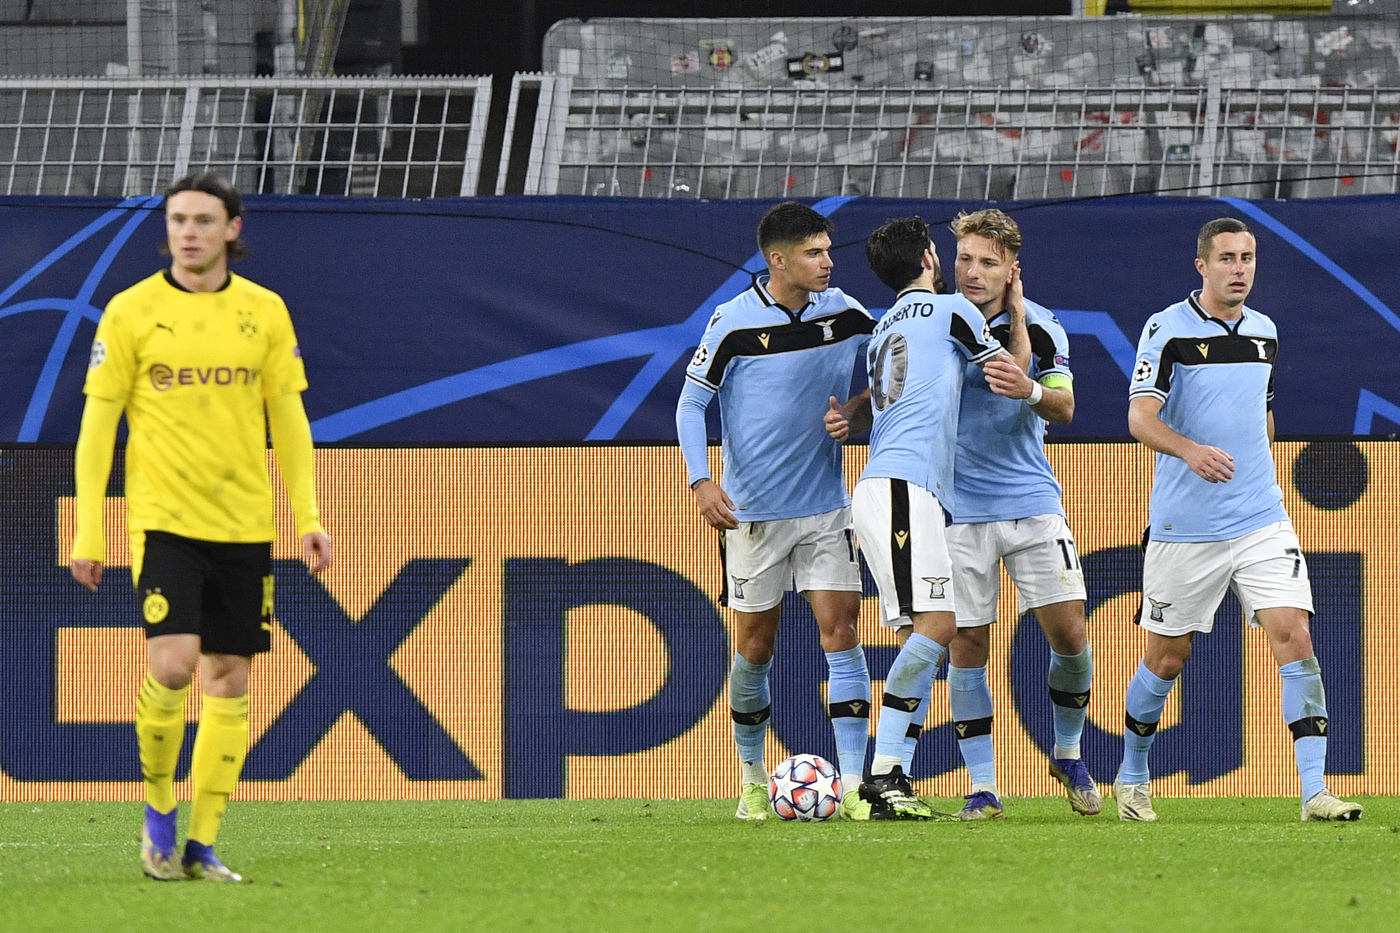 Champions League, Borussia Dortmund vs Lazio